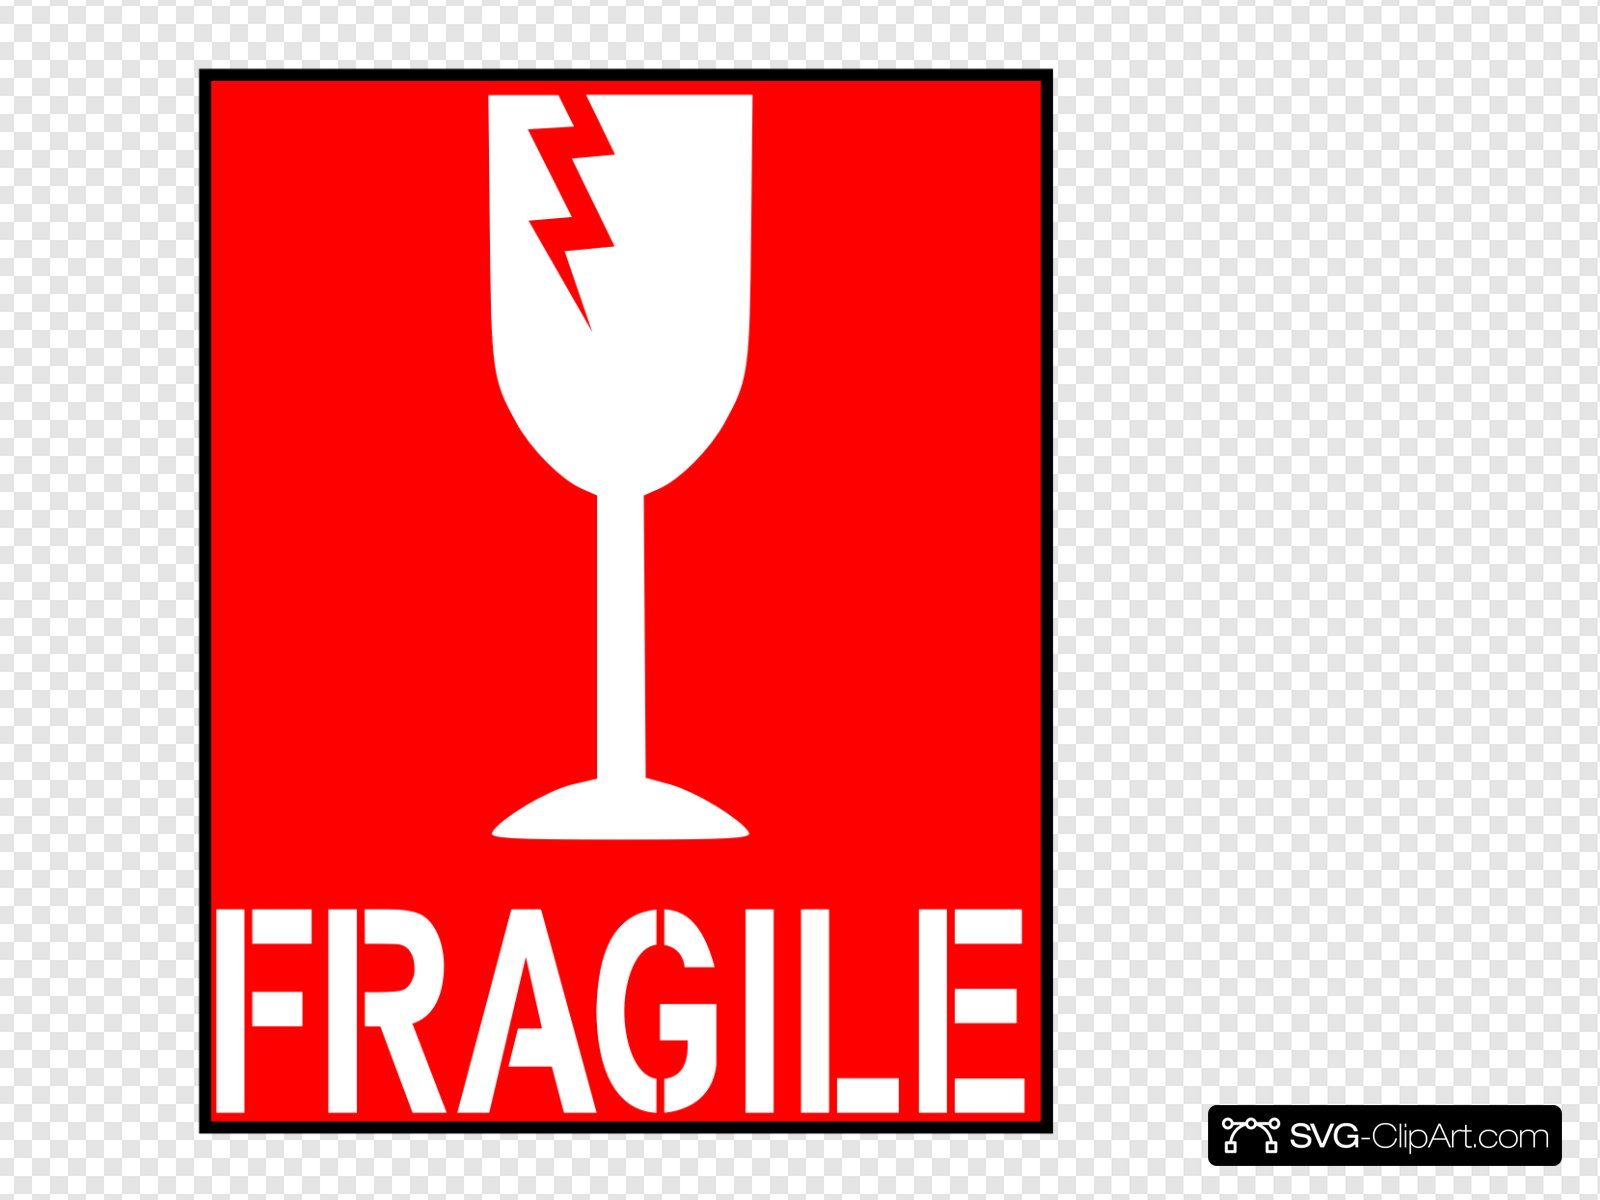 Fragile Red Clip art, Icon and SVG.